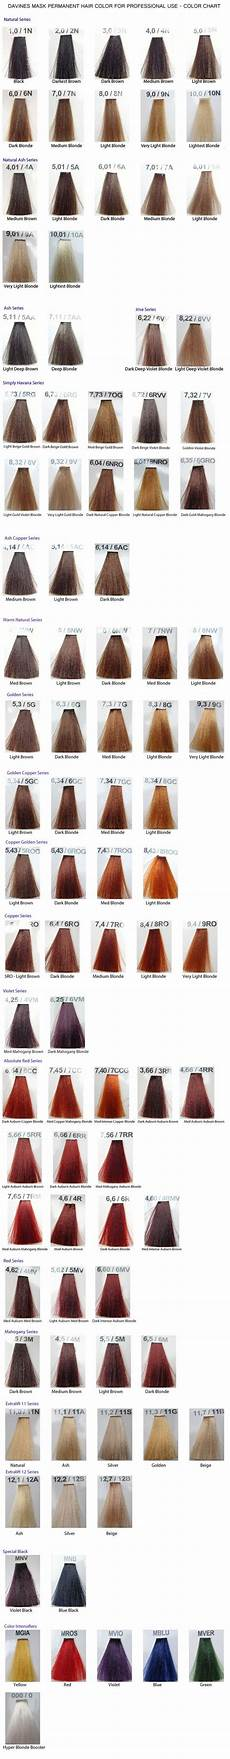 Davines Mask Colour Chart Davines Mask Color Chart My Salon Owner Hairstylist